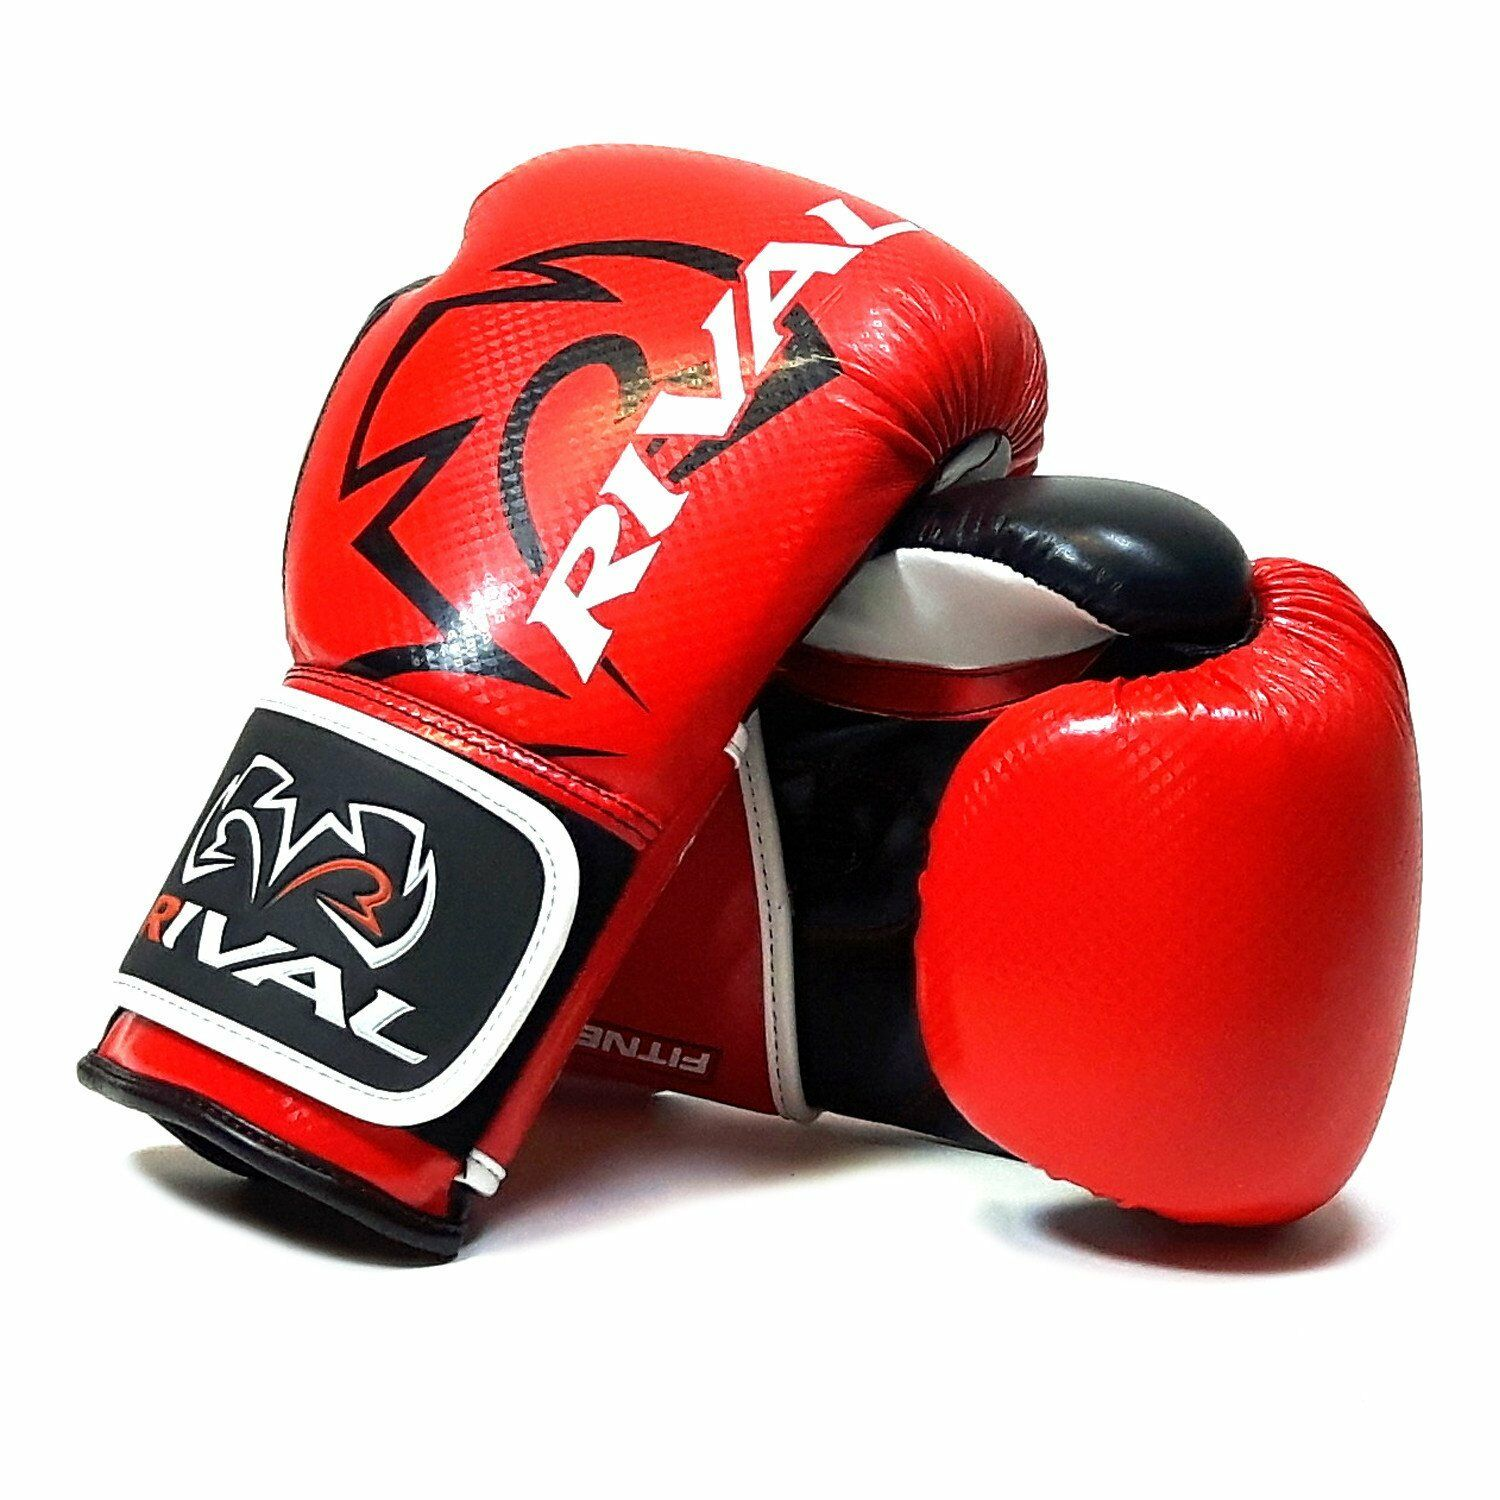 Rival RB7 Fitness Bag Training Gloves Boxing White Blue Red Elite bag Mitts Pads